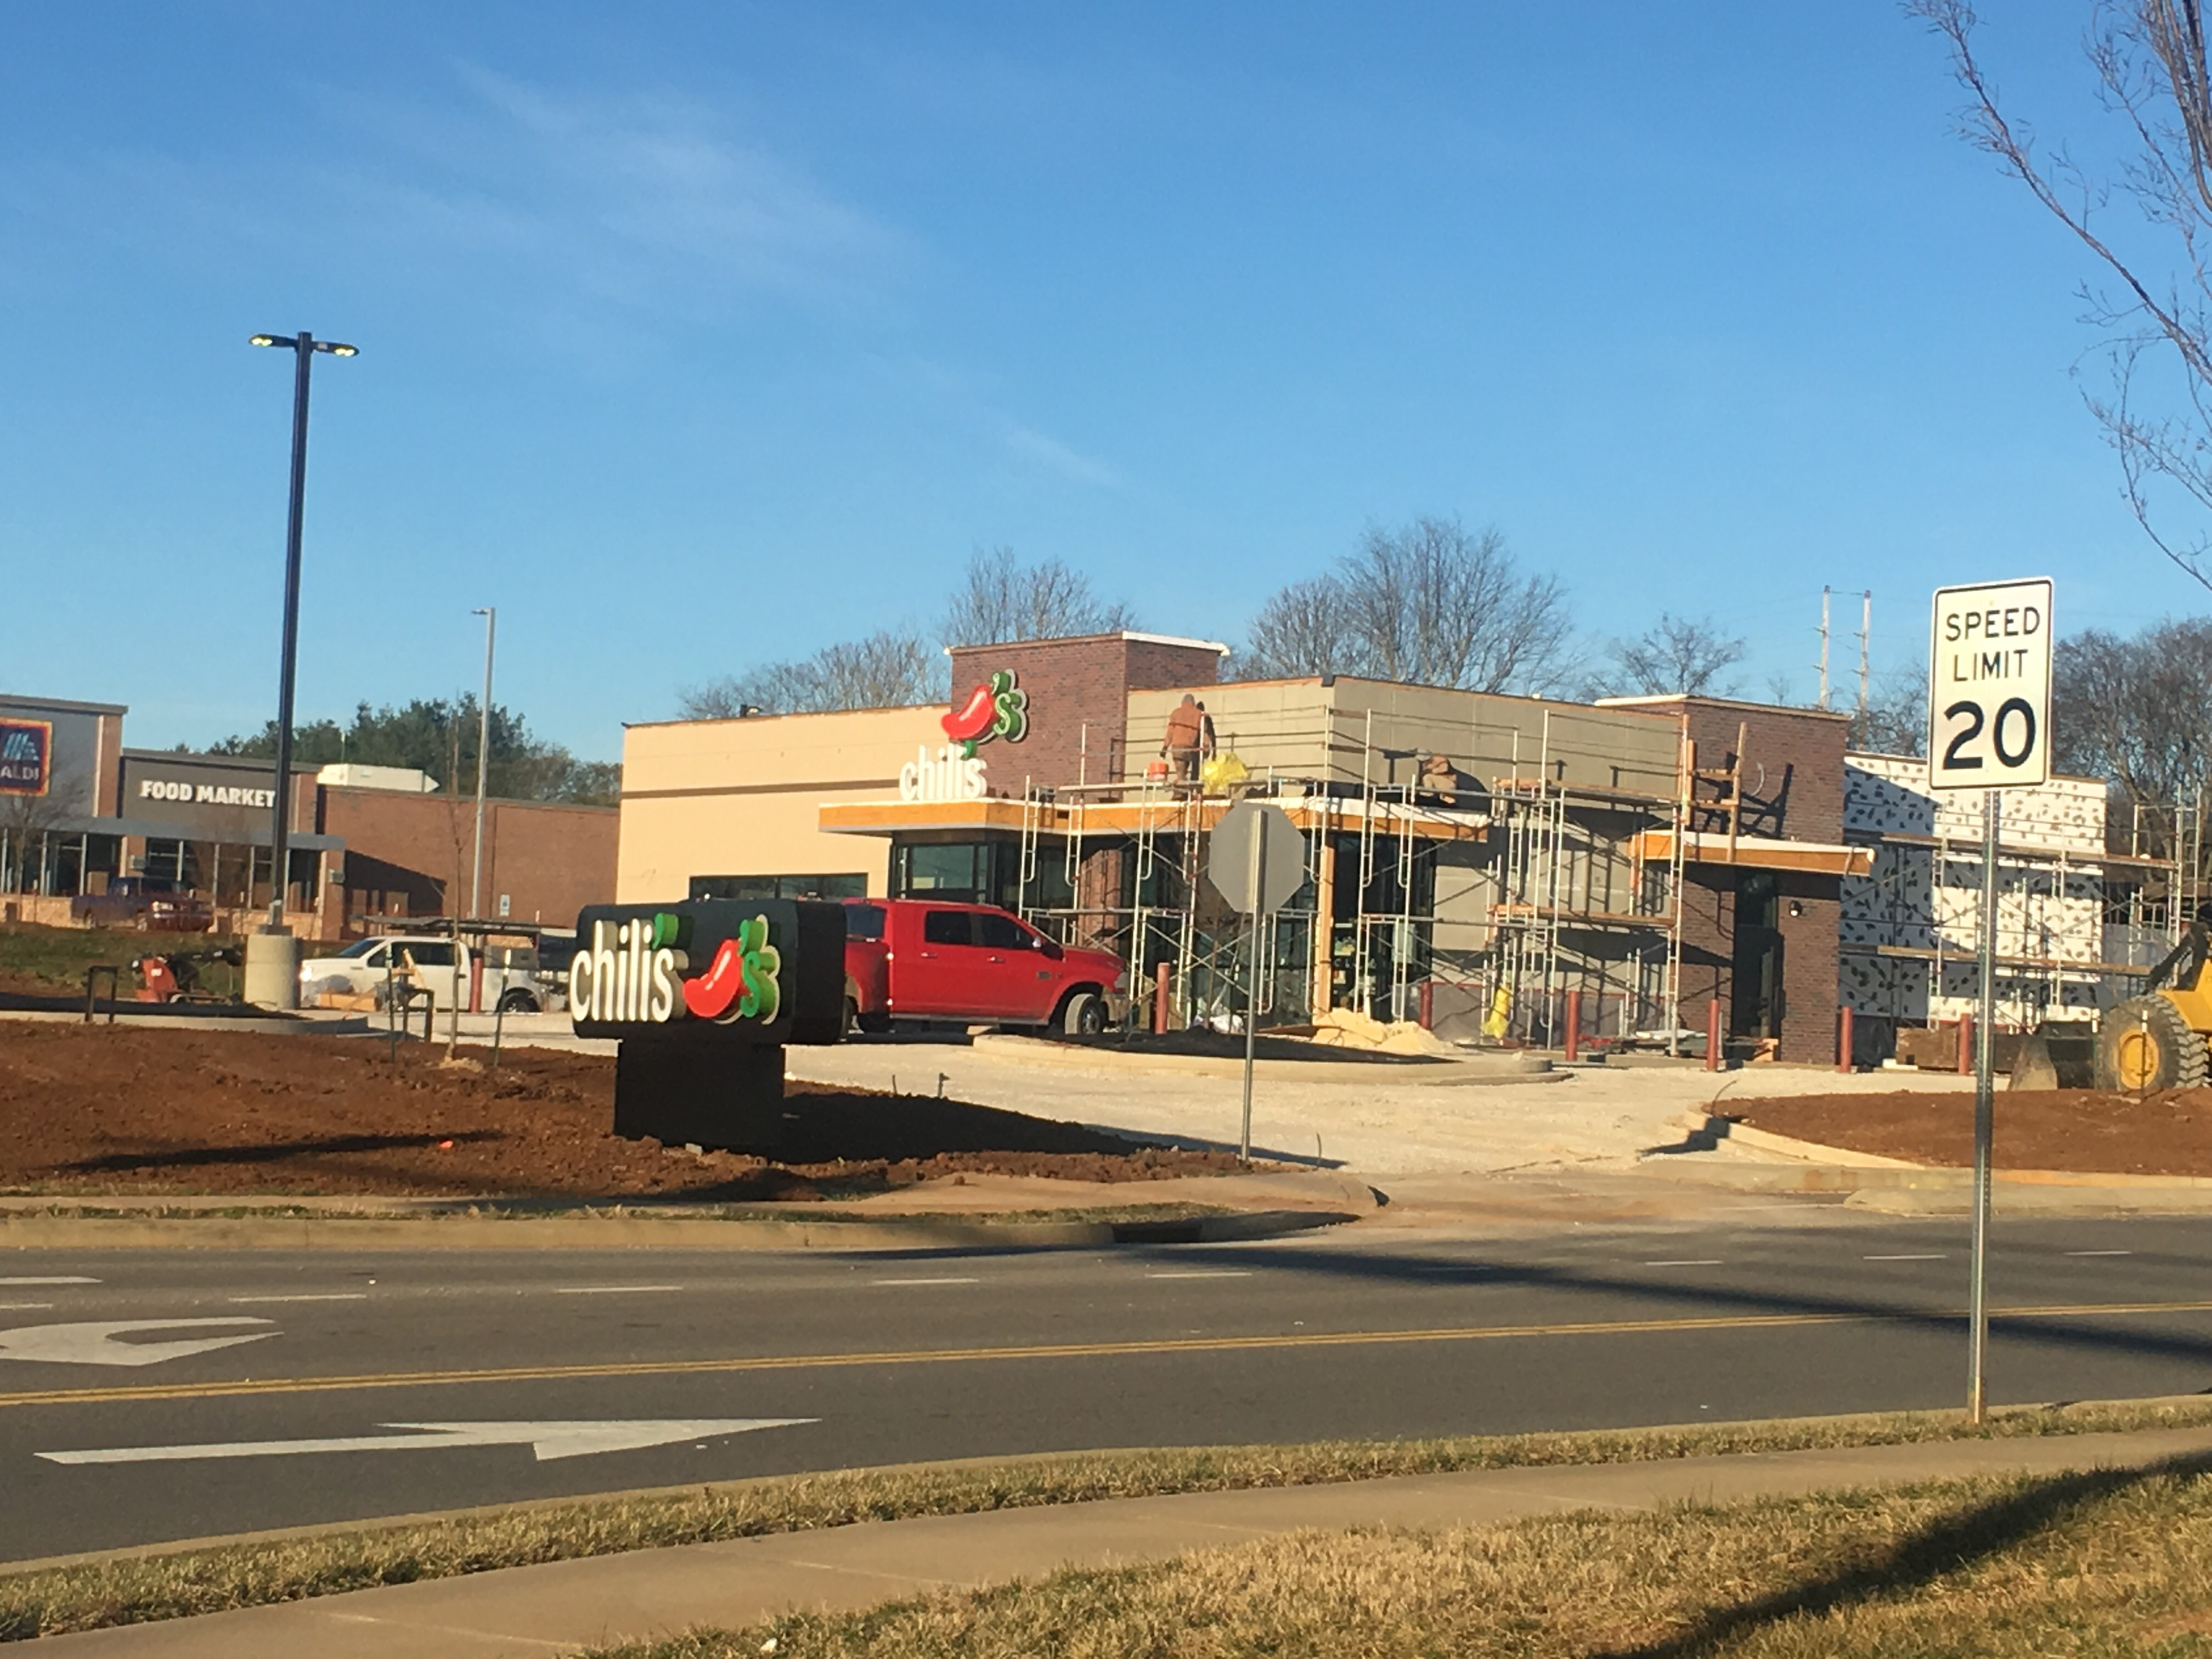 The new Chili's is slated to open in Morristown, TN at new Cherokee Crossing shopping center.